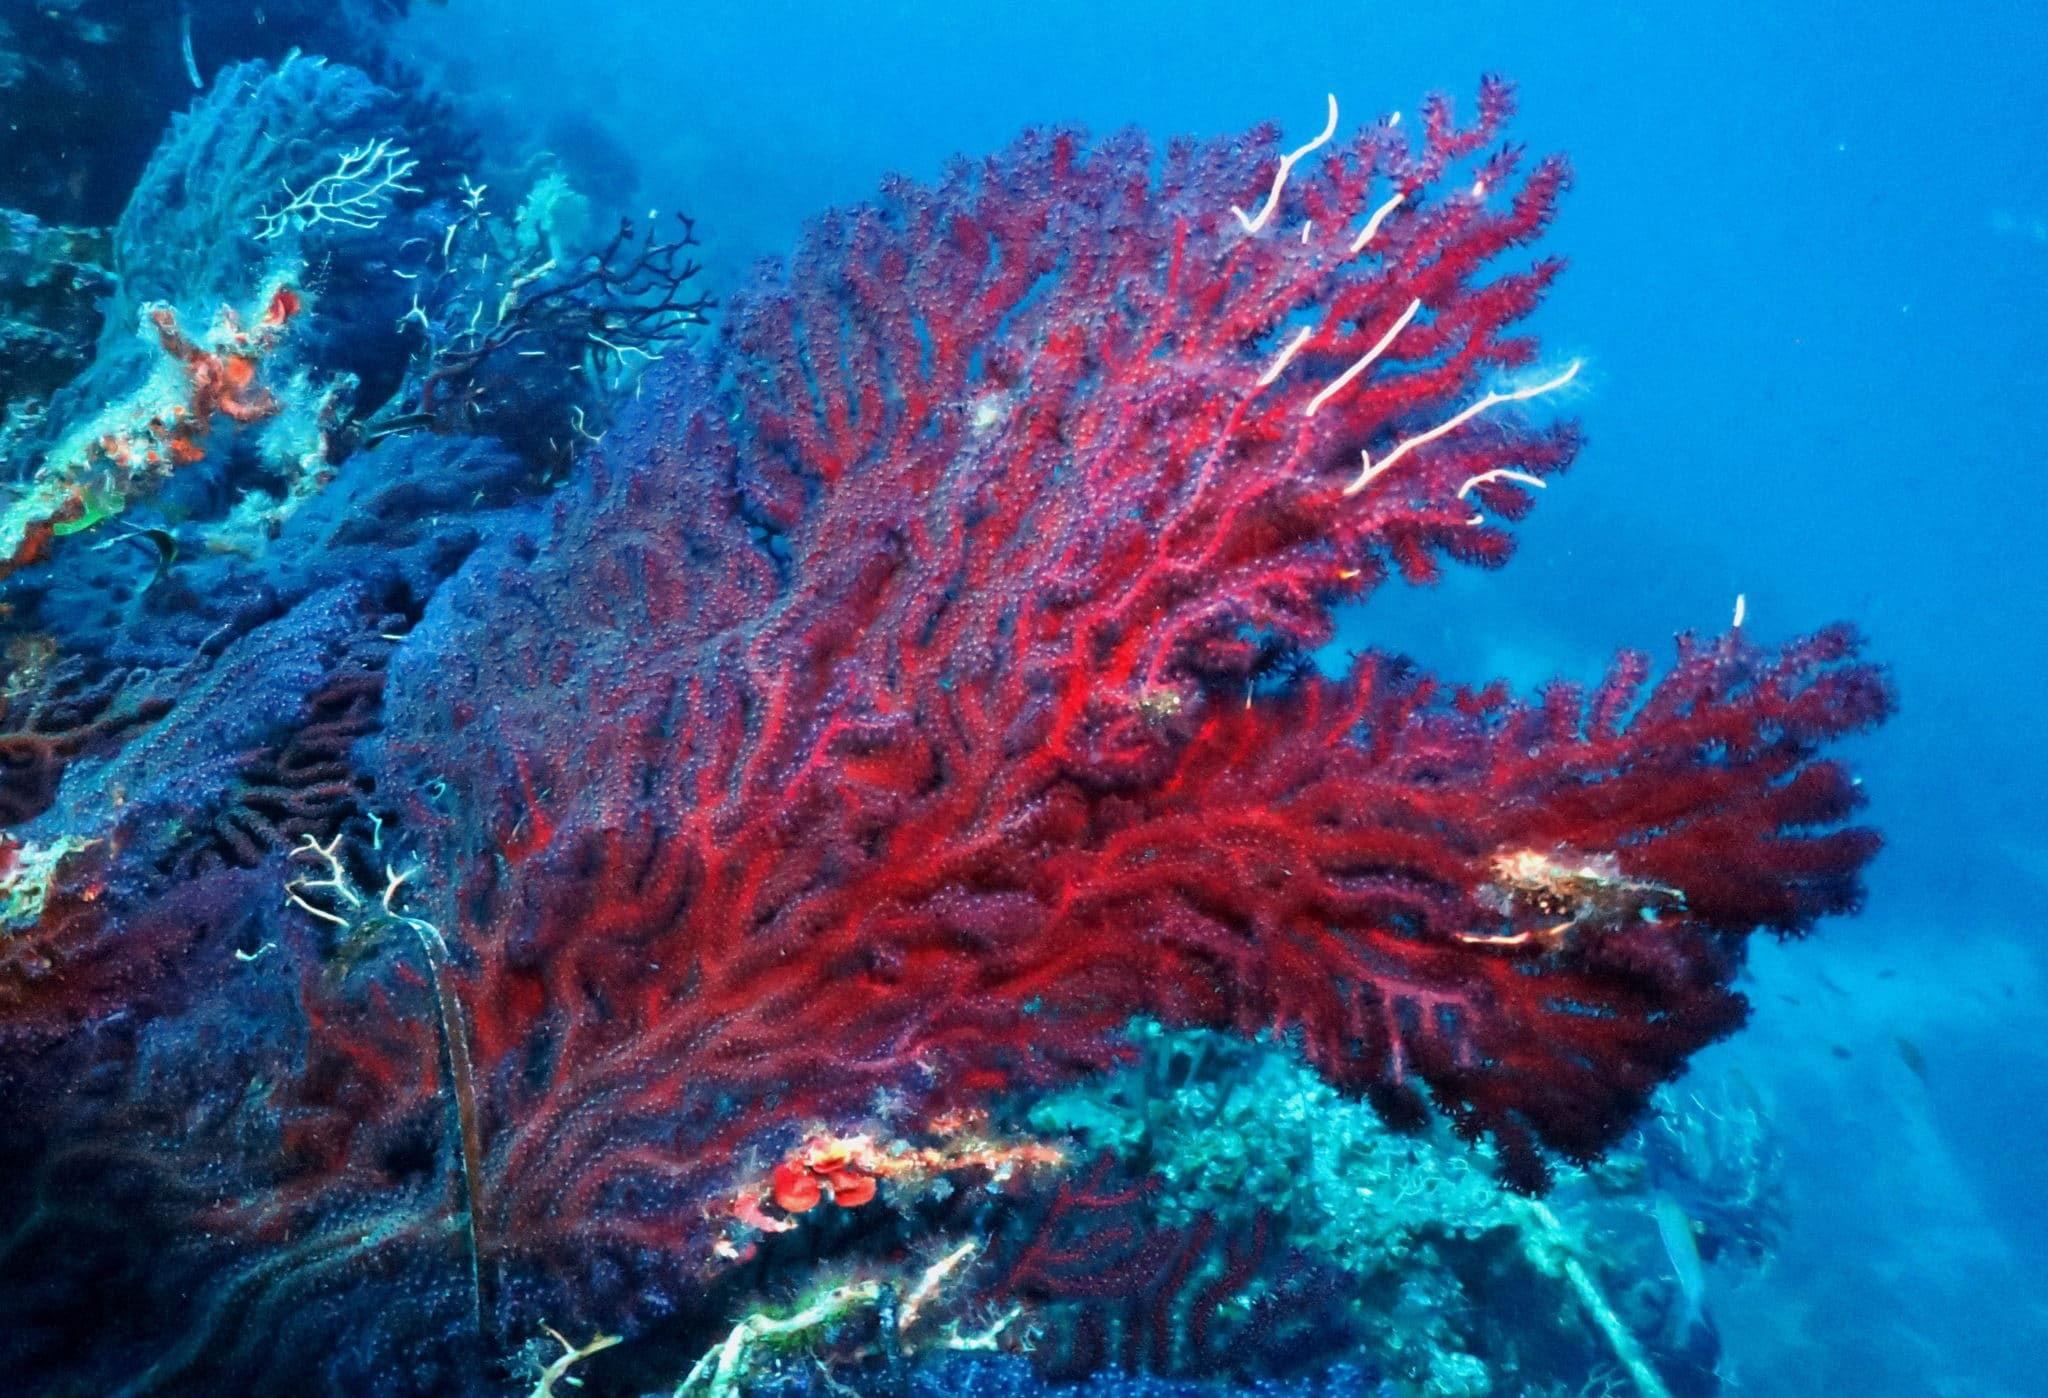 Red Gorgonians Scuba diving in Alonissos Greece